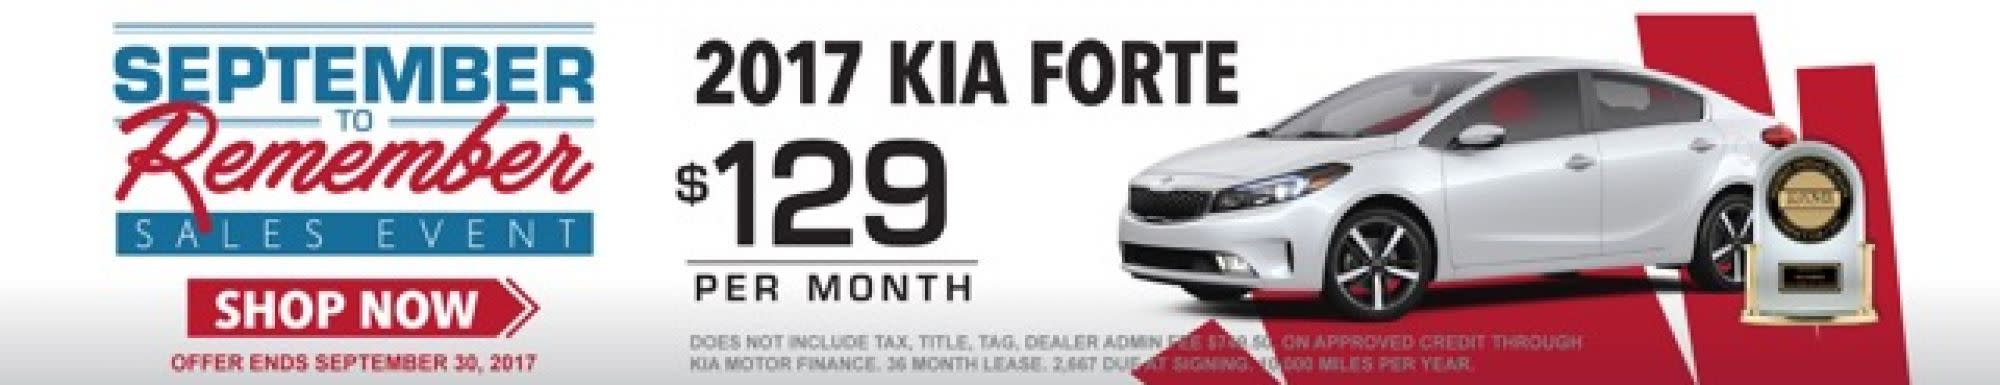 Union County Kia Forte Lease Offer